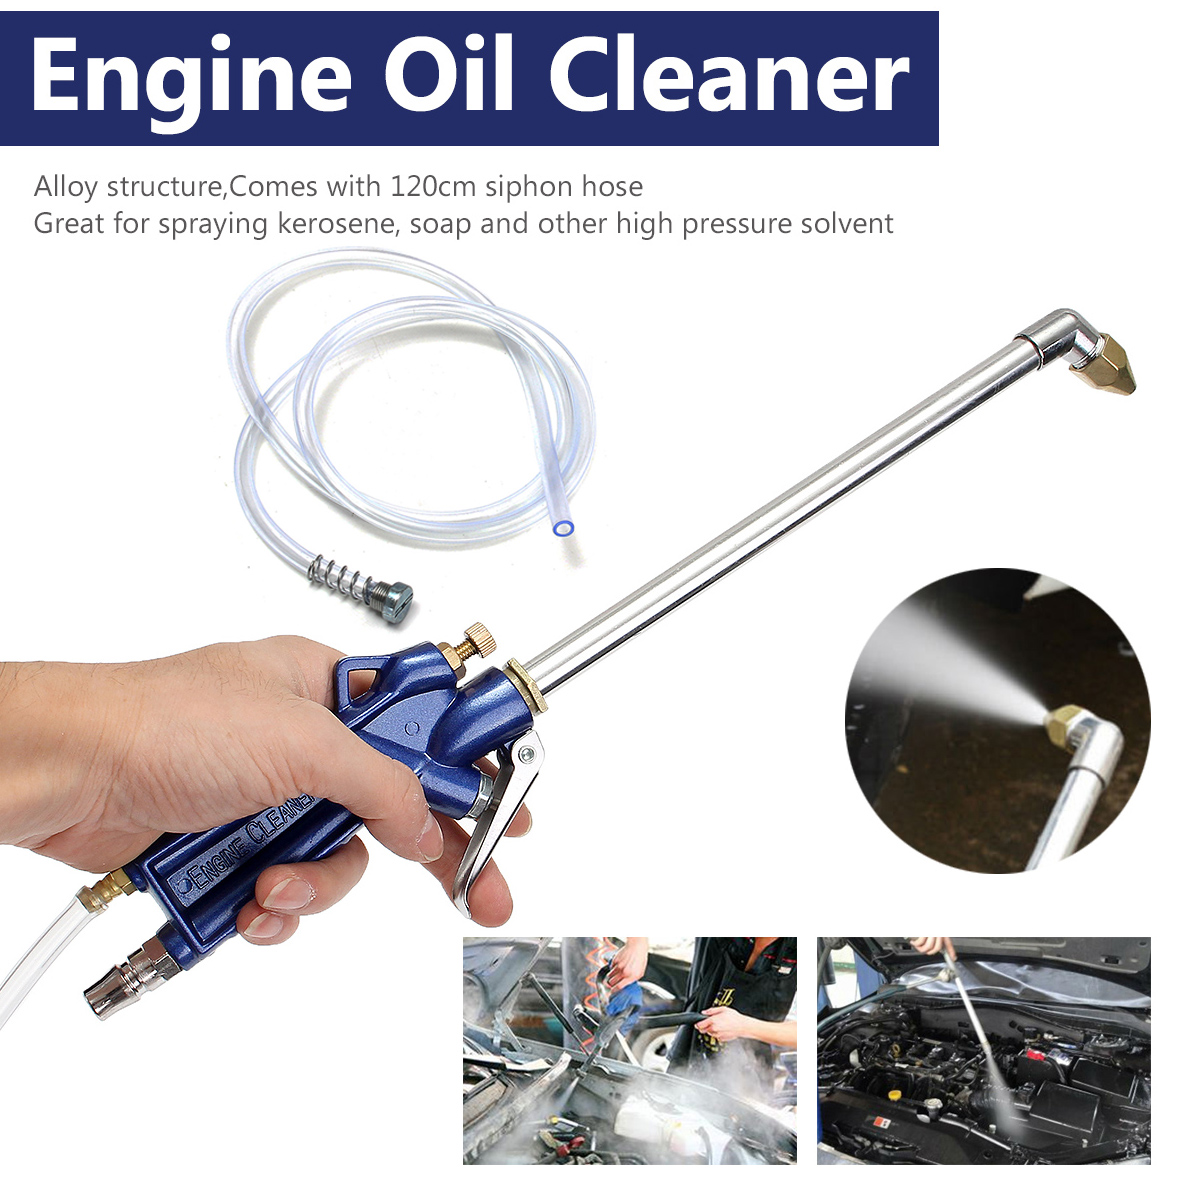 New 400mm Engine Oil Cleaner Tool Car Auto Water Cleaning Gun Pneumatic Tool with 120cm Hose Machinery Parts Alloy Engine Care new auto alternator 6bt engine c3972529 28v 70a